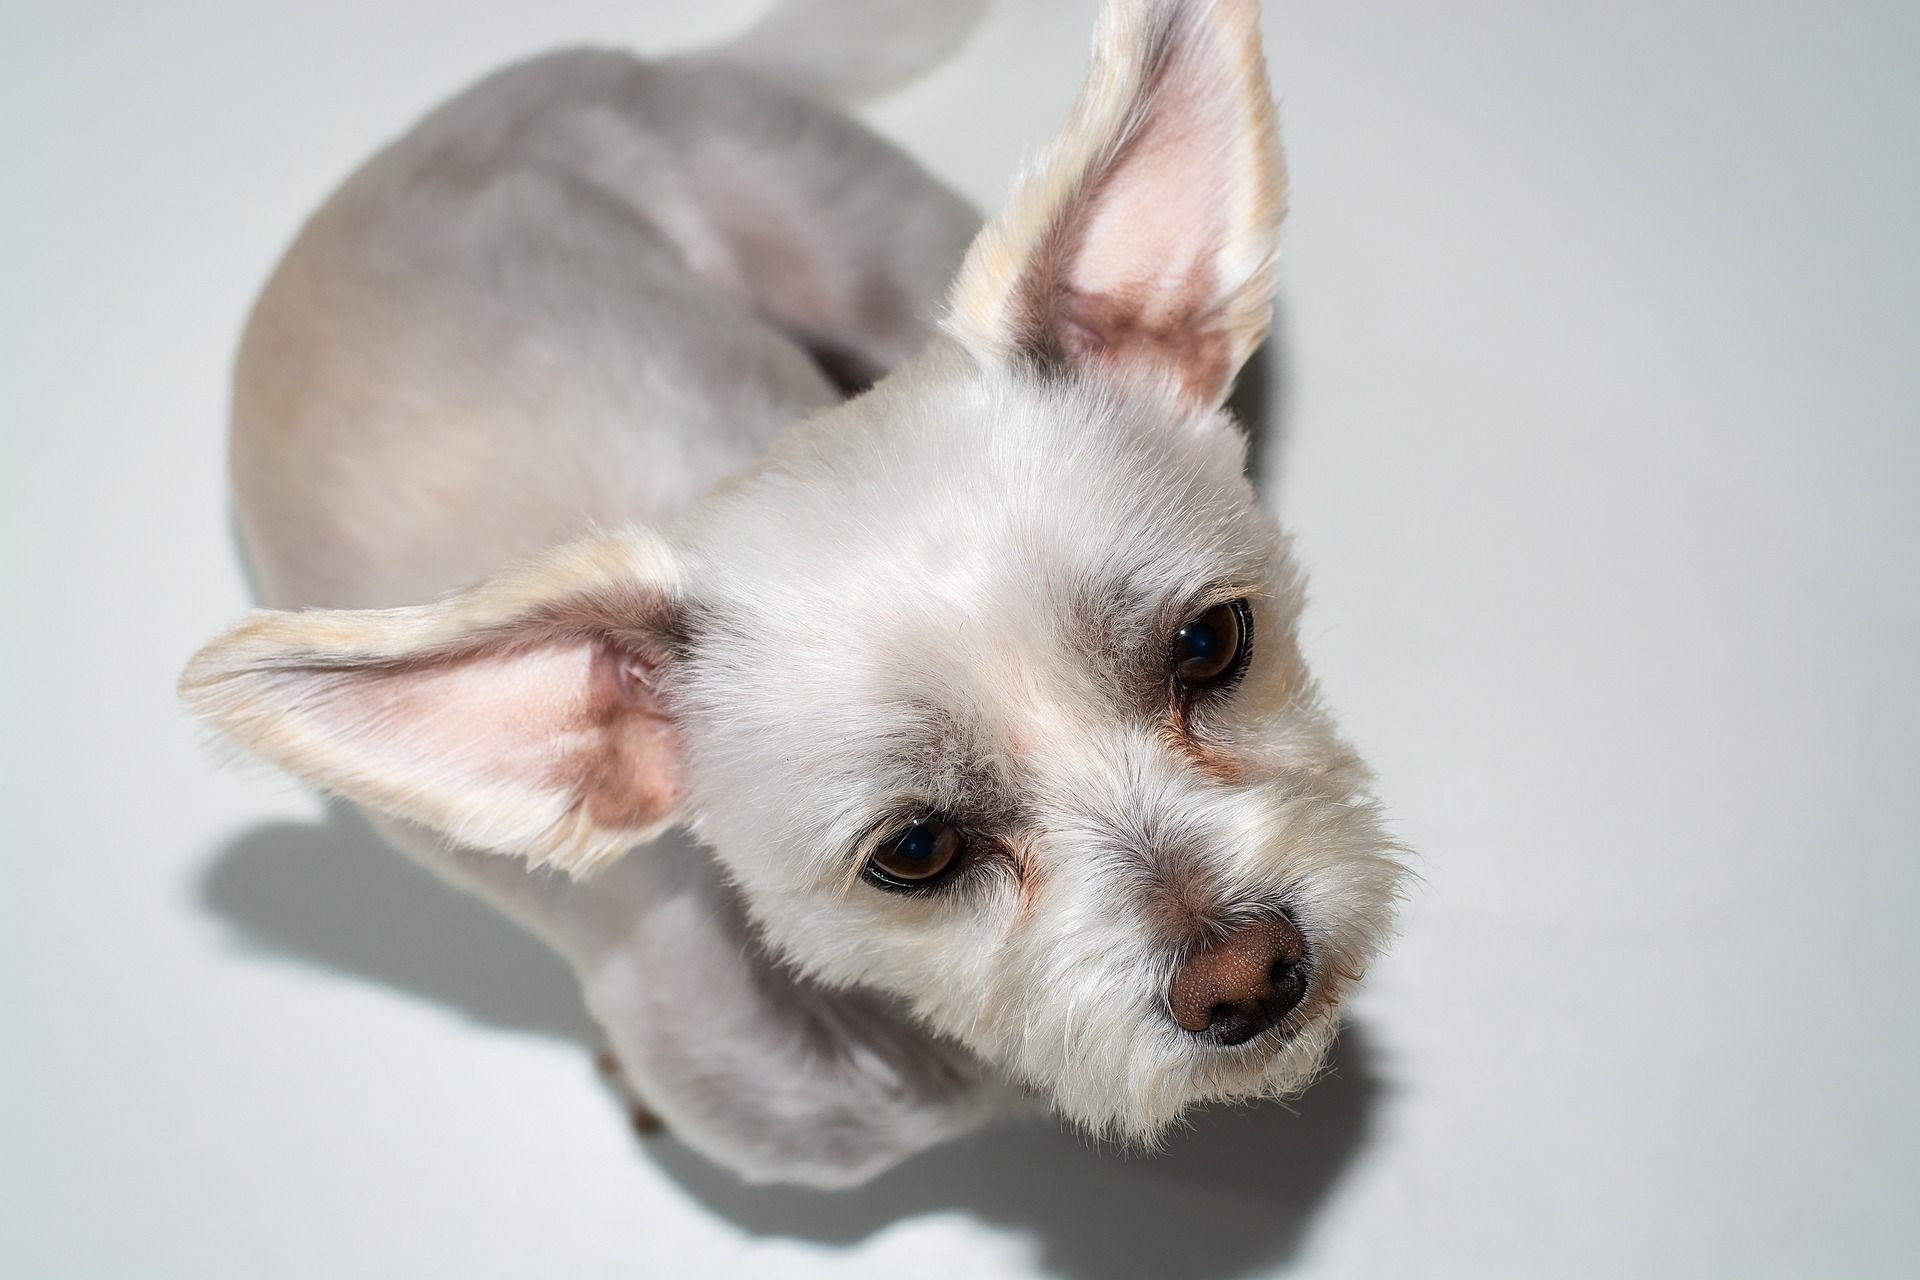 Is it safe to use olive oil or peroxide to clean dog and